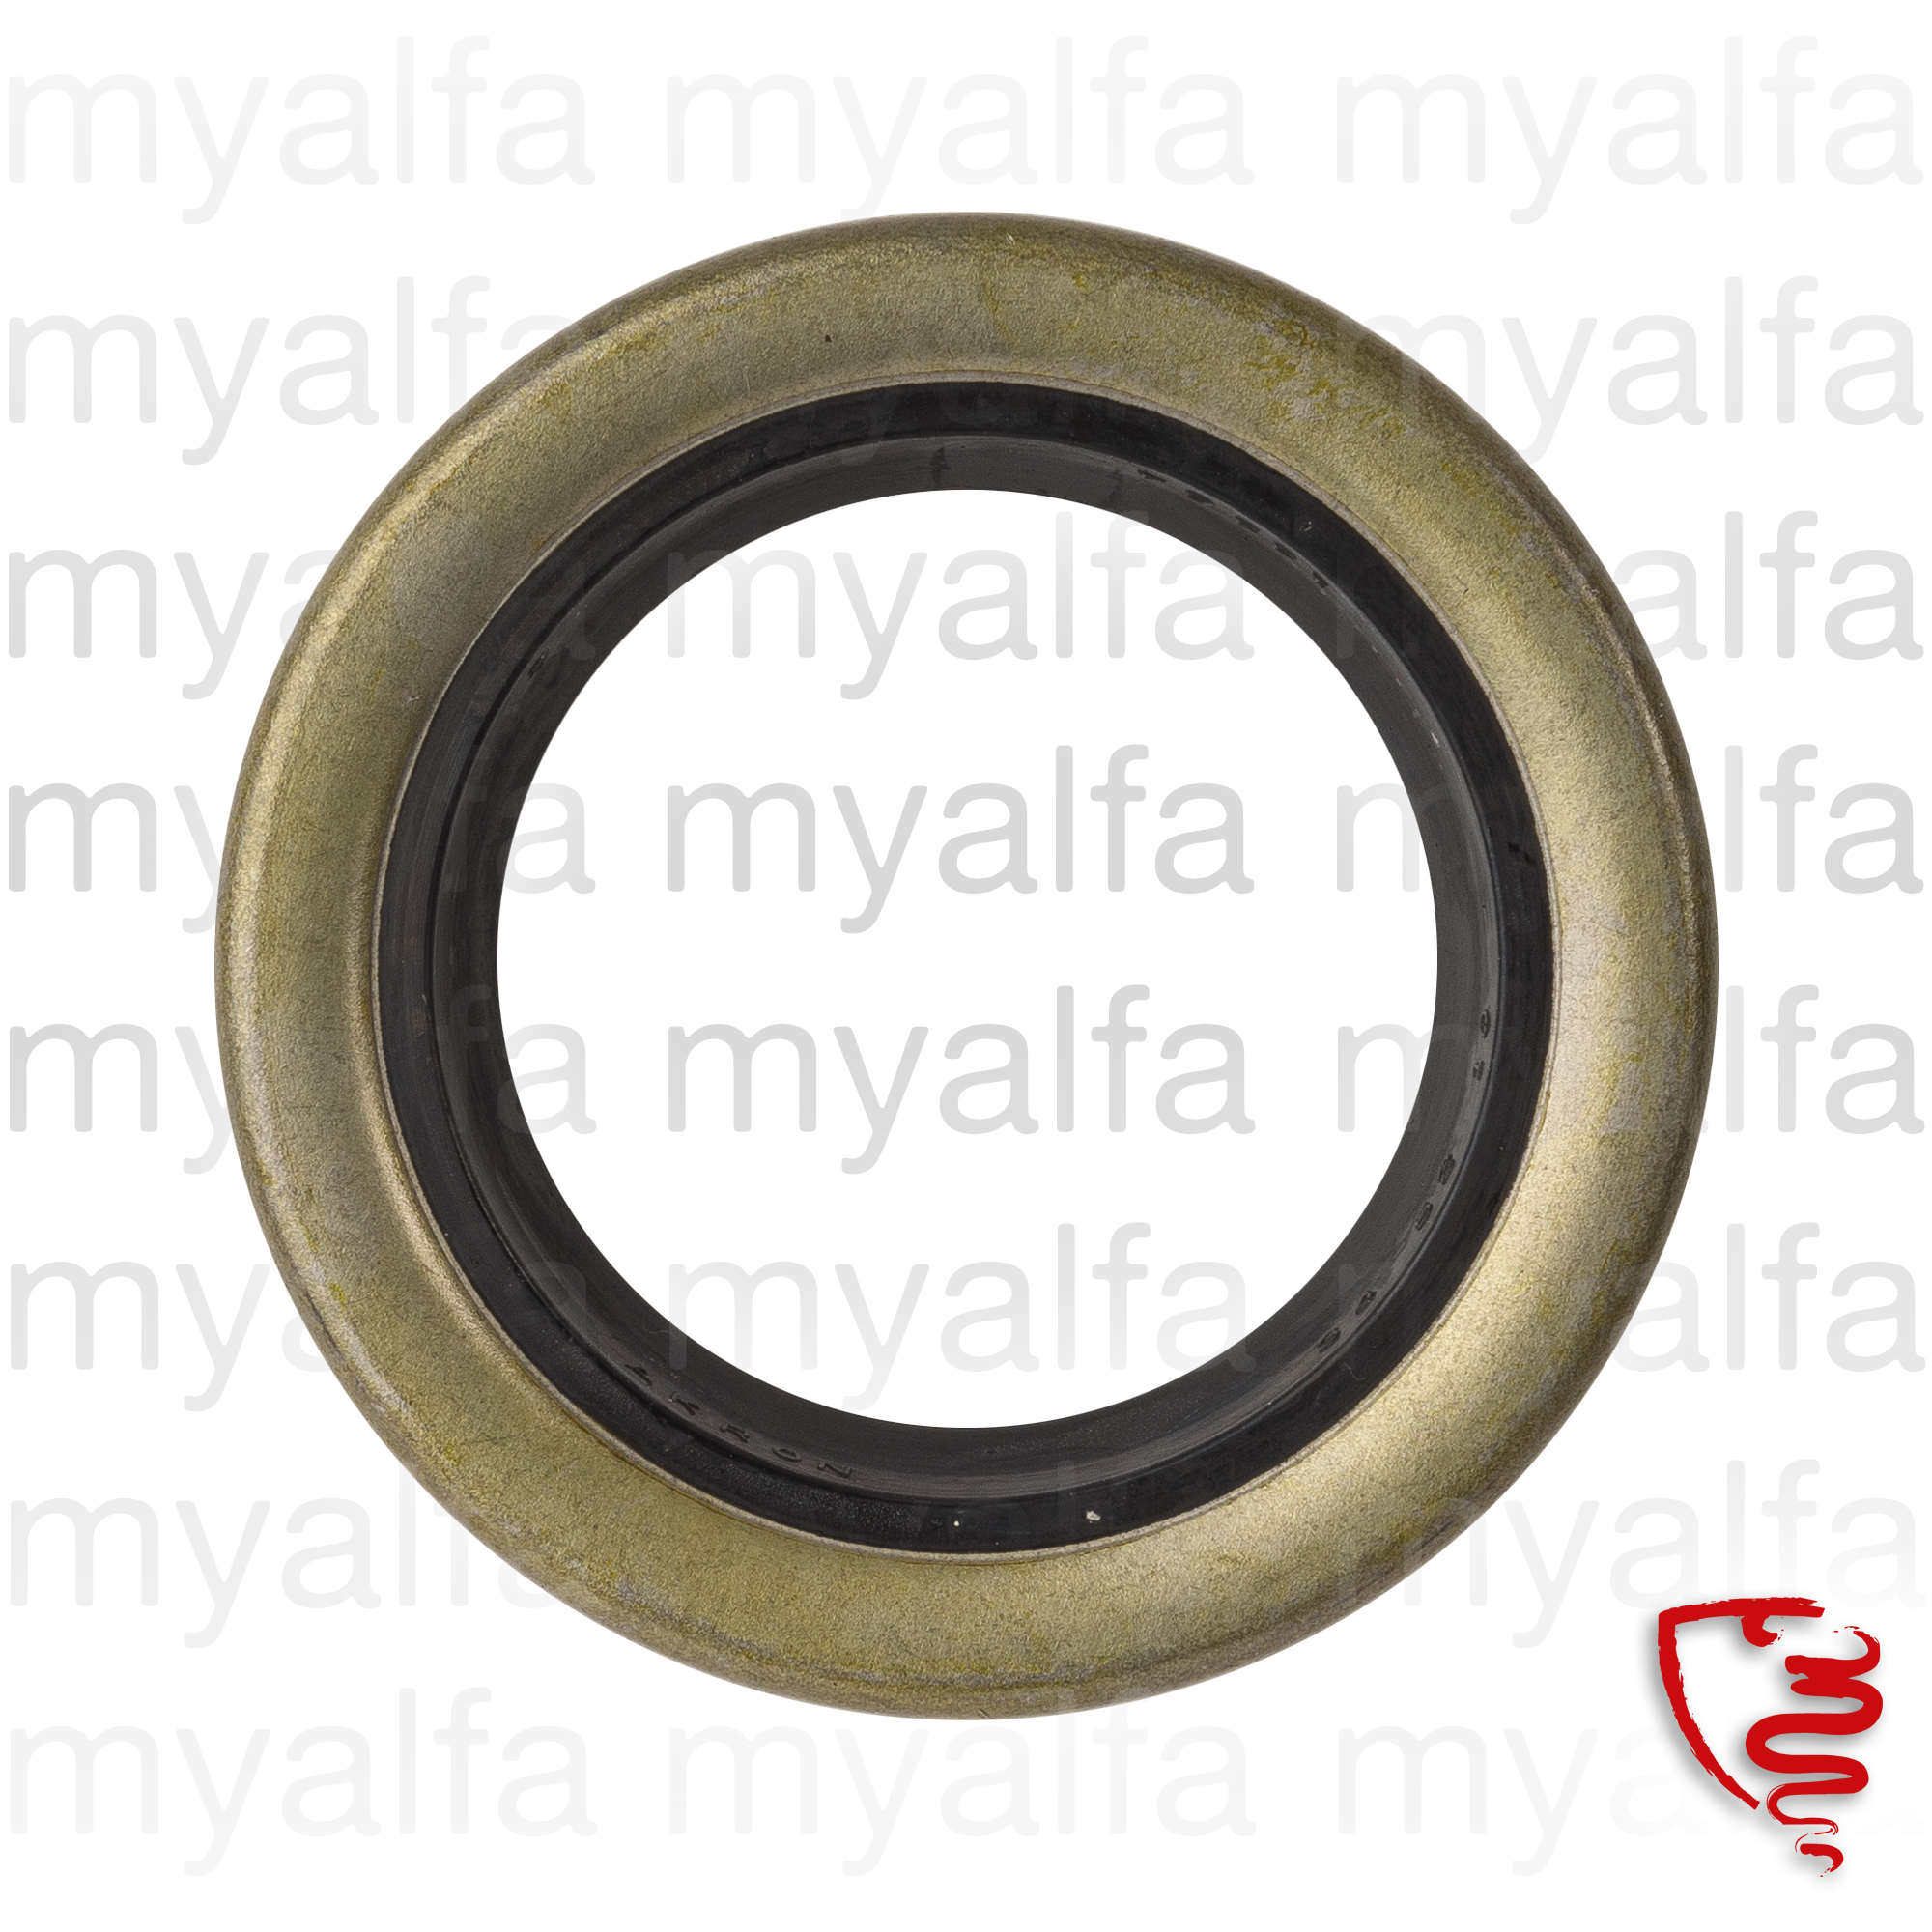 Shaft seal behind 2nd series 72-93 52/34/10 for 105/115, Differential, Bearings+fittings